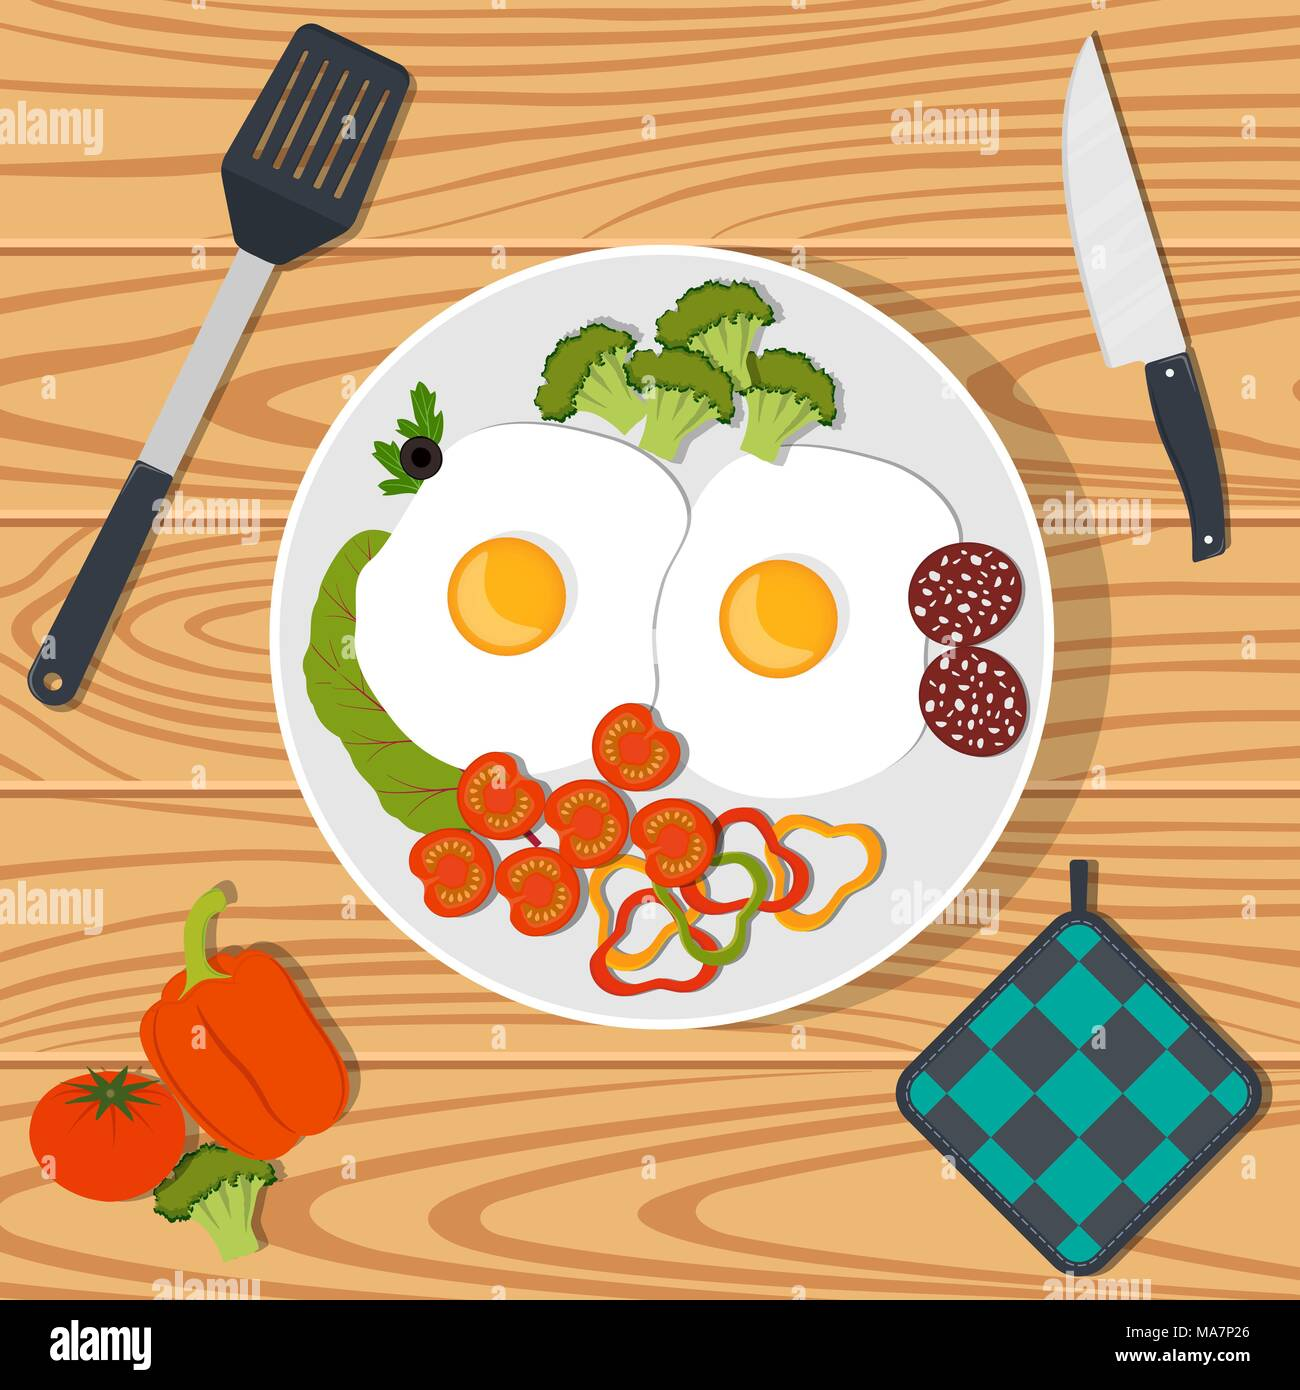 Traditional Breakfast Scrambled Eggs With Vegetables And Sausage On White Plate Vector Illustration In Flat Style Stock Vector Image Art Alamy